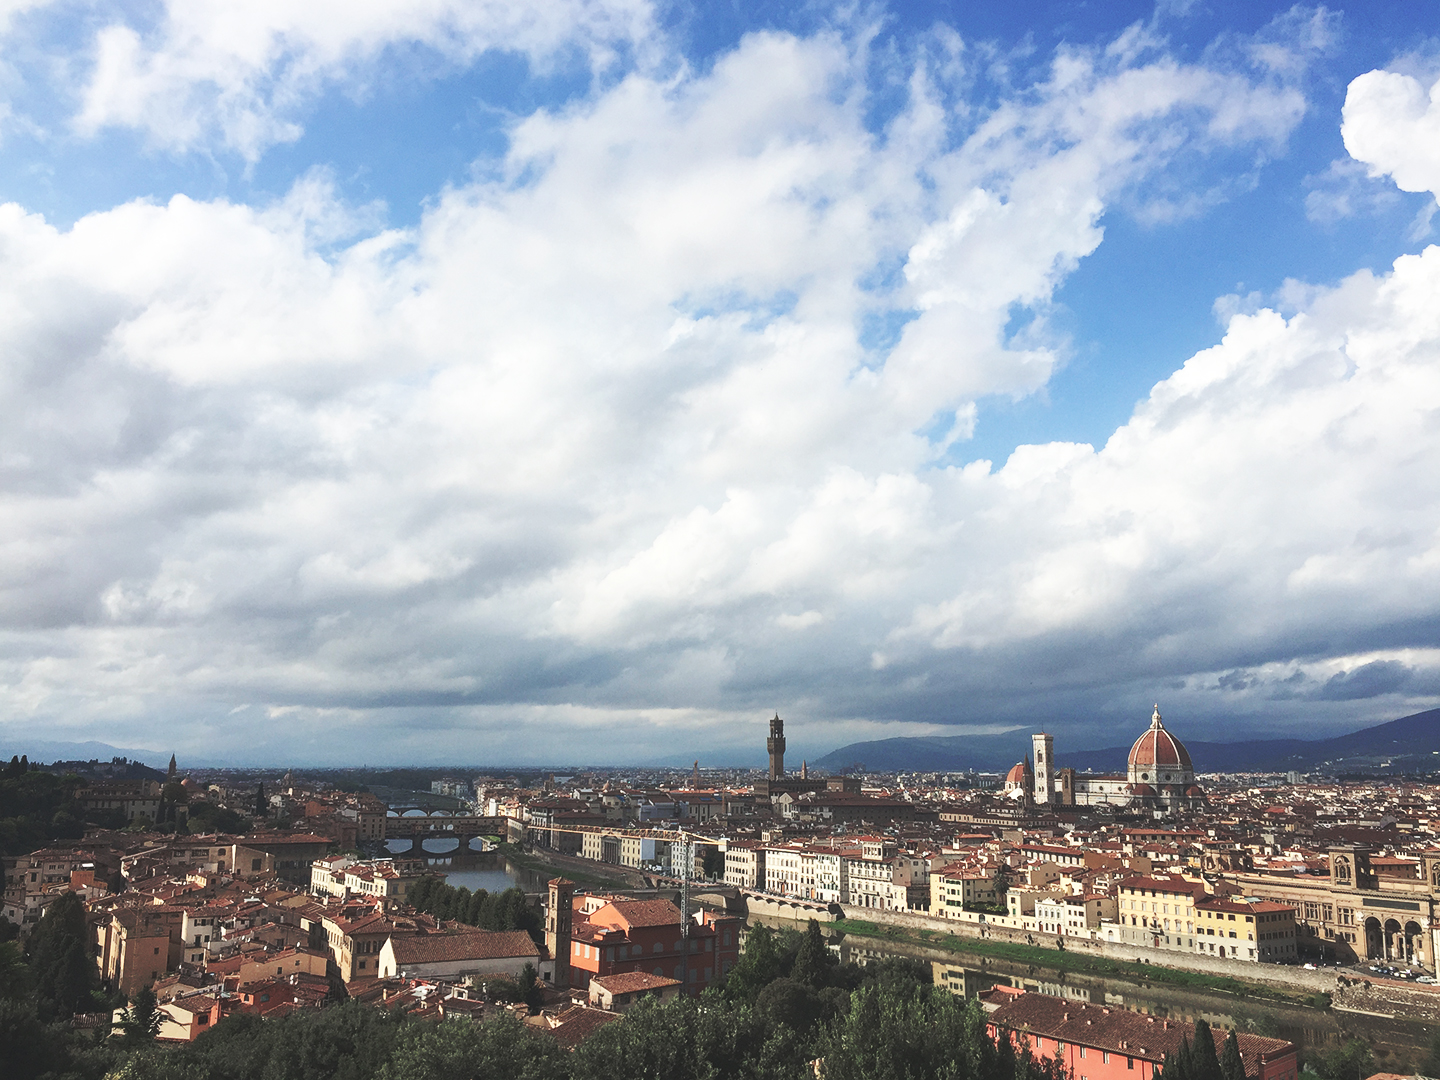 A photograph taken in Florence, Italy 2015